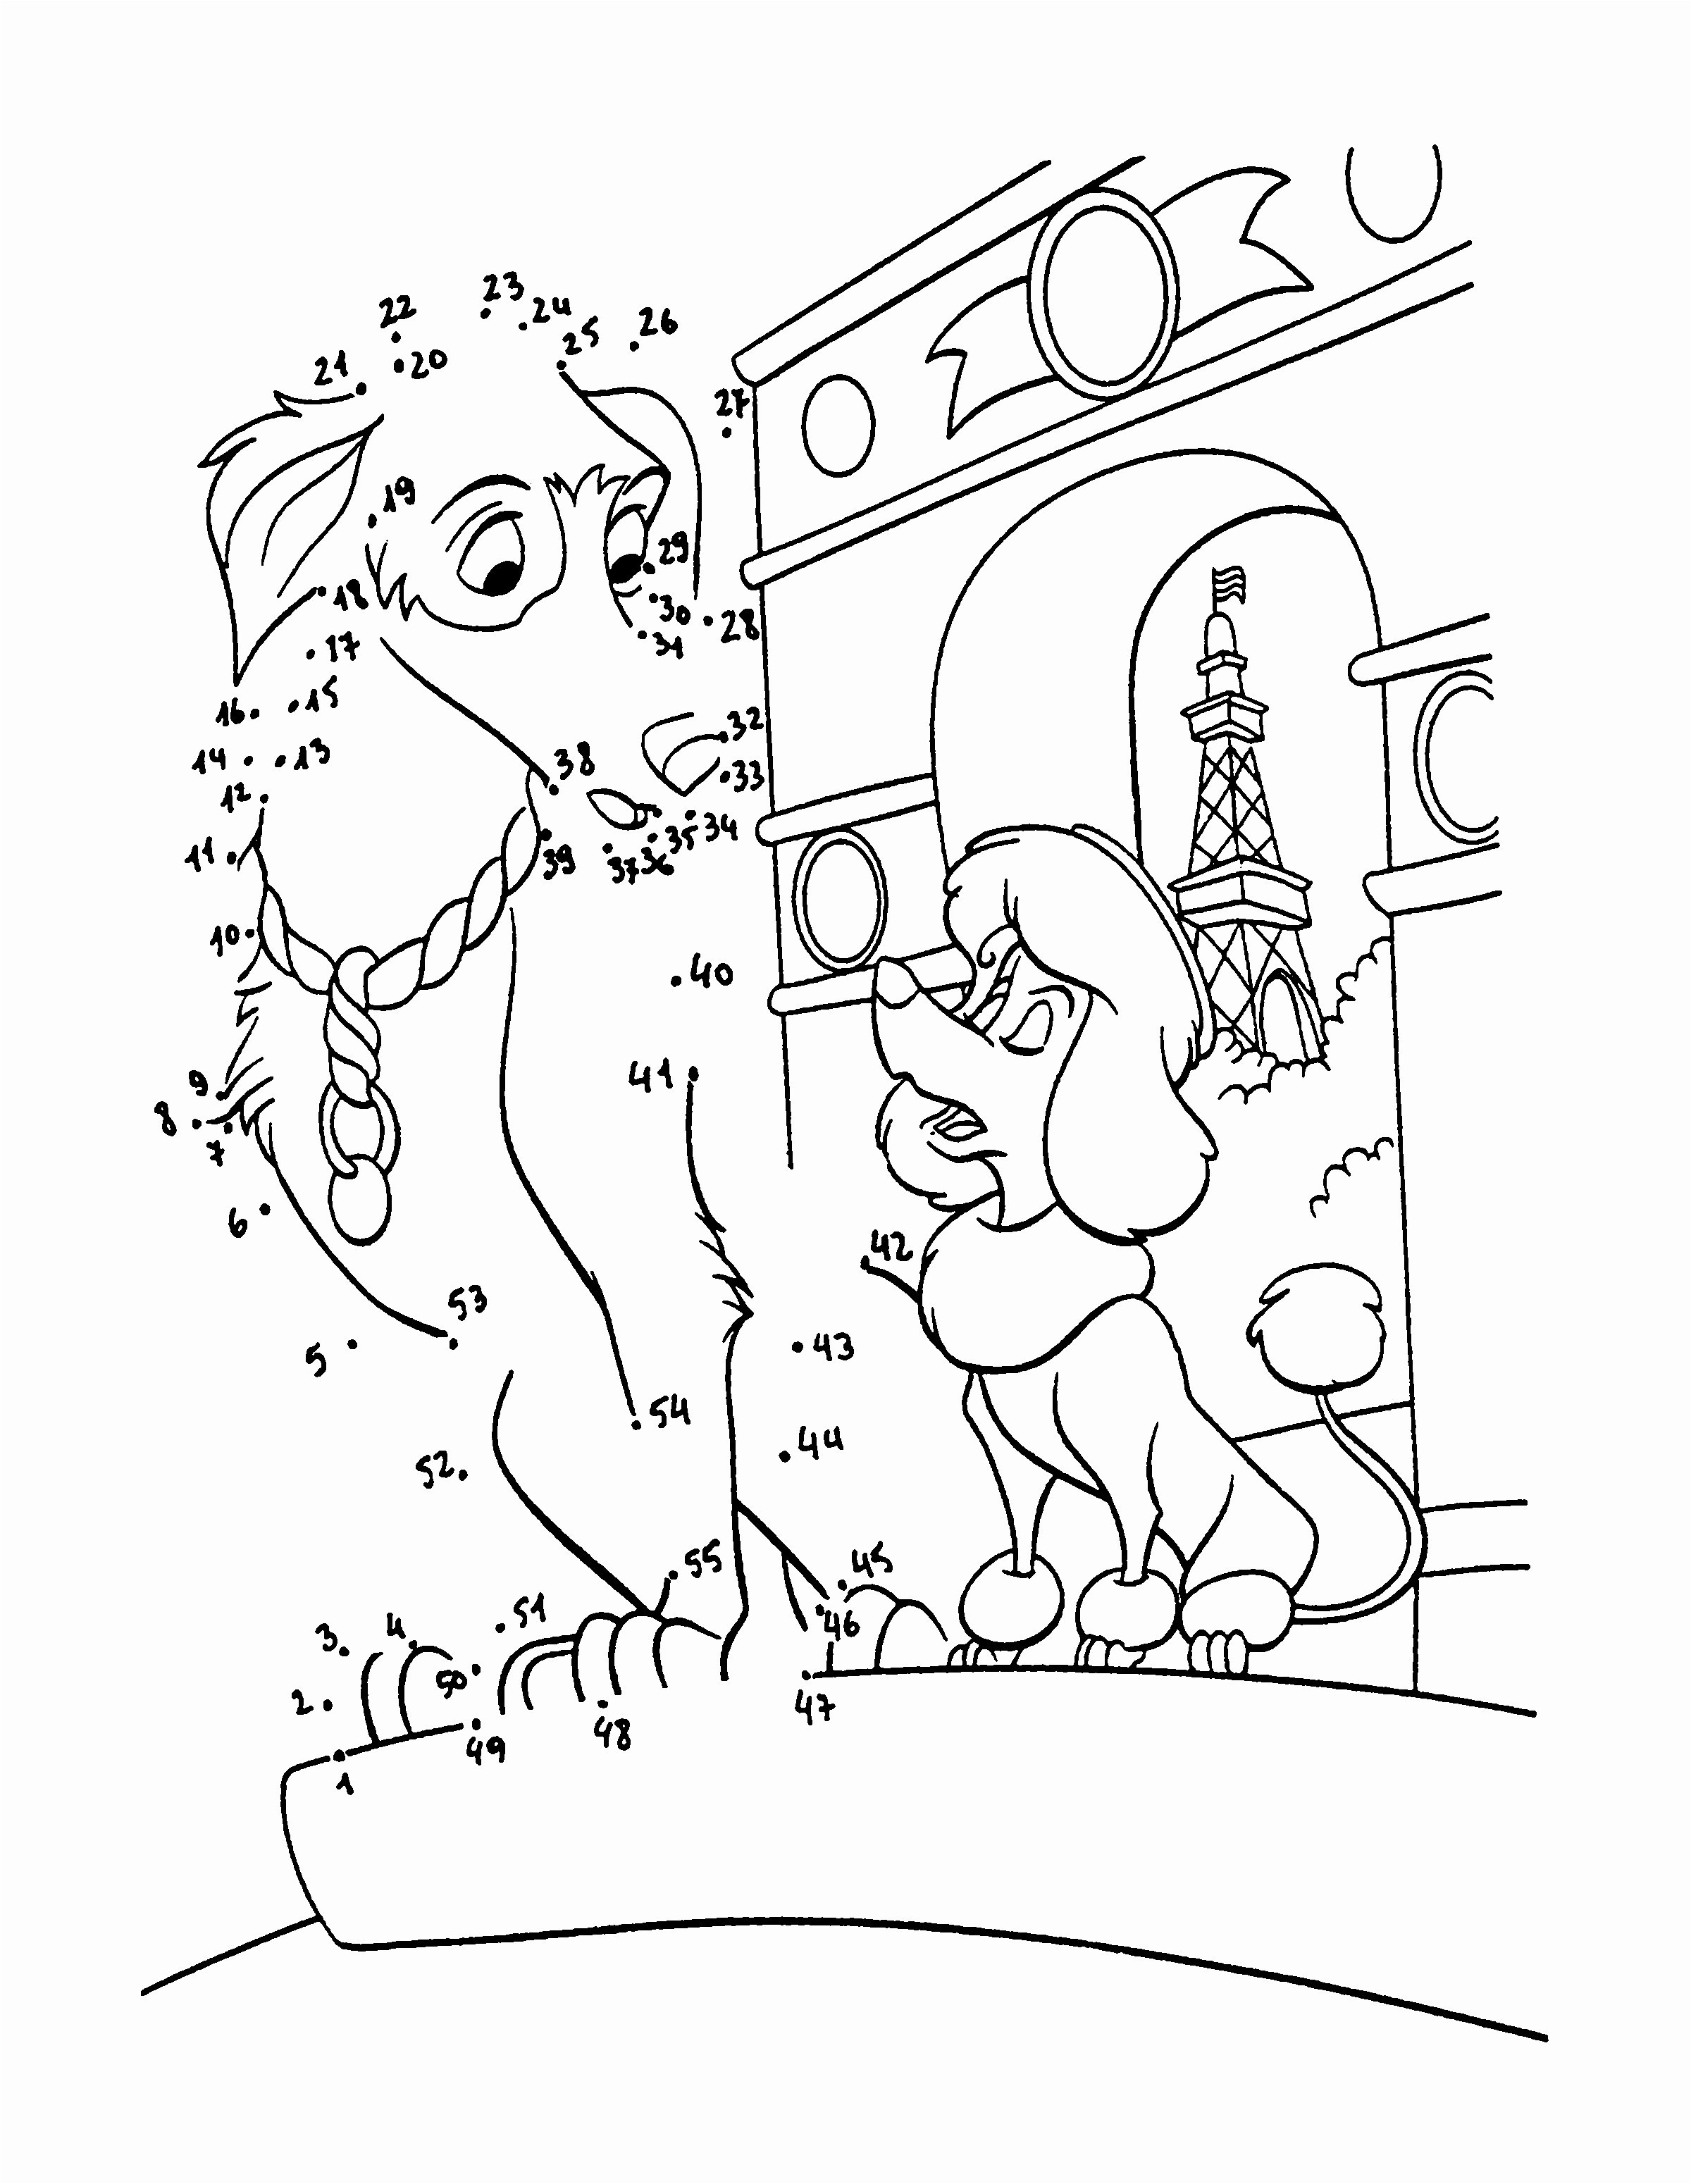 free jesus coloring pages Collection-Easy to Draw Jesus New 46 Awesome Graph Coloring Pages Jesus – Coloring Sheets 13-l